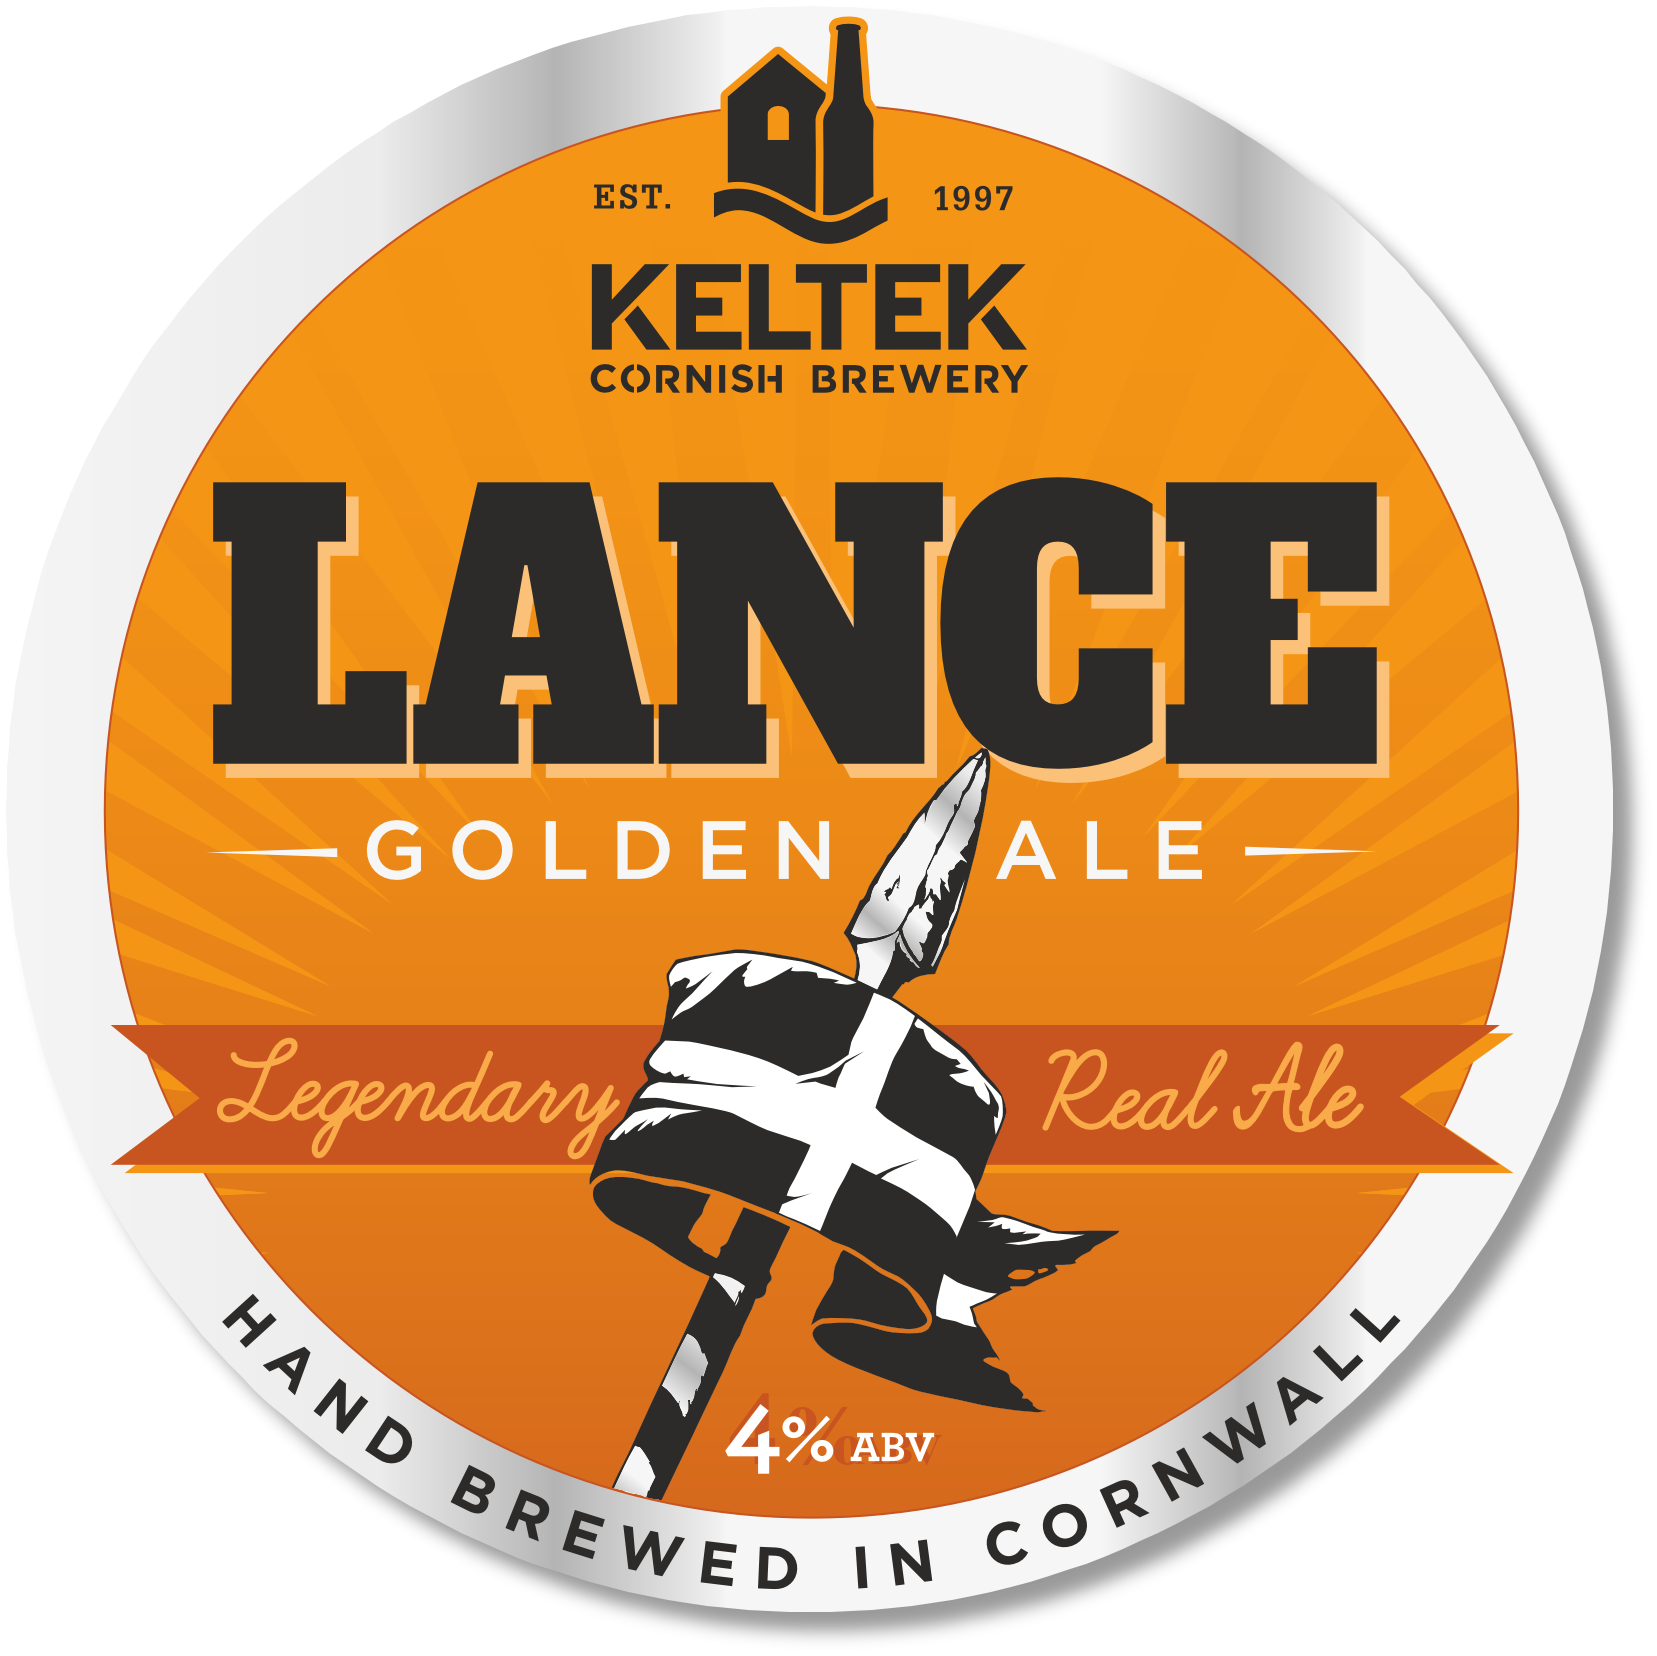 Lance 4.0% - A refreshing, easy-drinking golden ale, with light citrus notes and hoppy accents. Winner of both the Cornwall CAMRA Beer Festival Champion Cornish Beer and Cornwall CAMRA Beer Festival Best Session Bitter Awards.